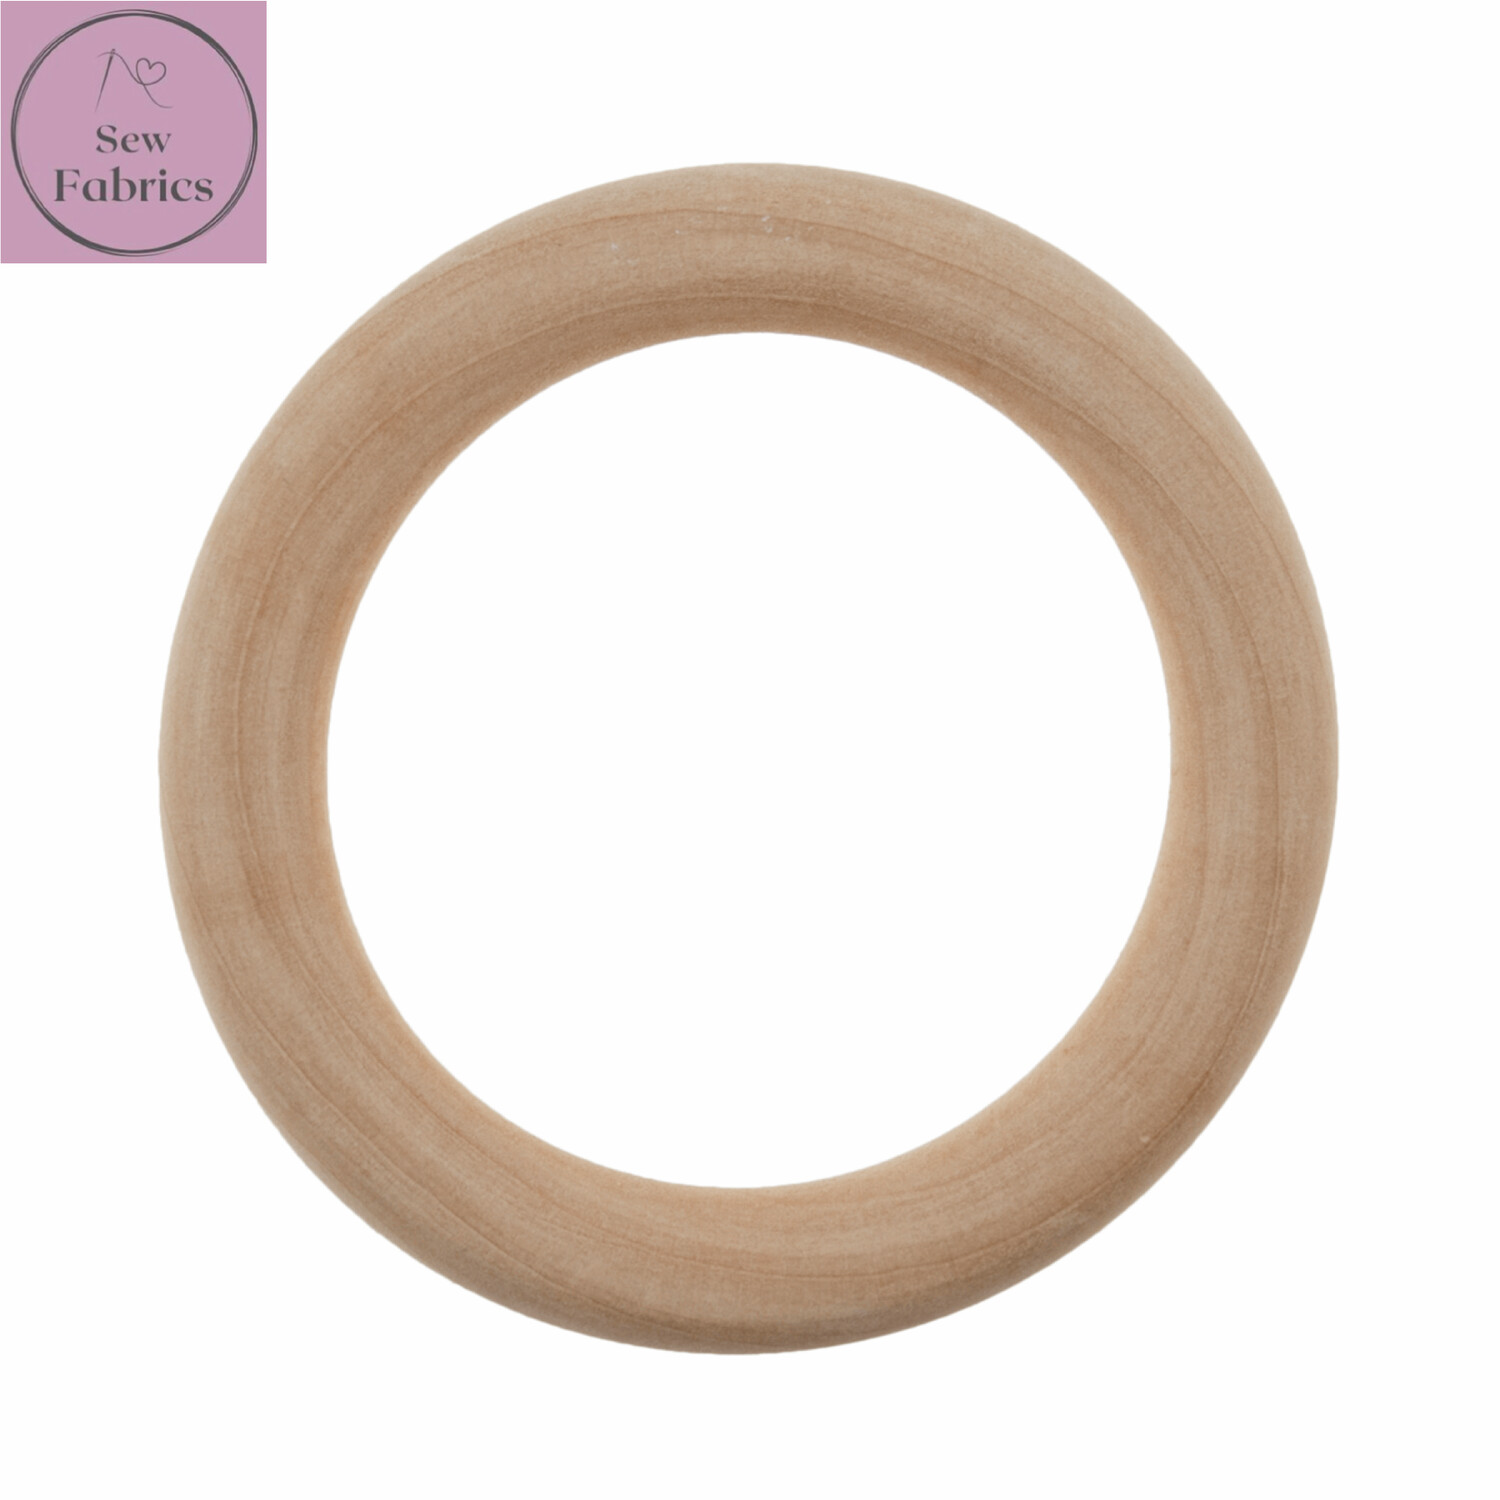 Wooden Craft Ring 7cm Diameter, for Macrame, Wall hanging projects